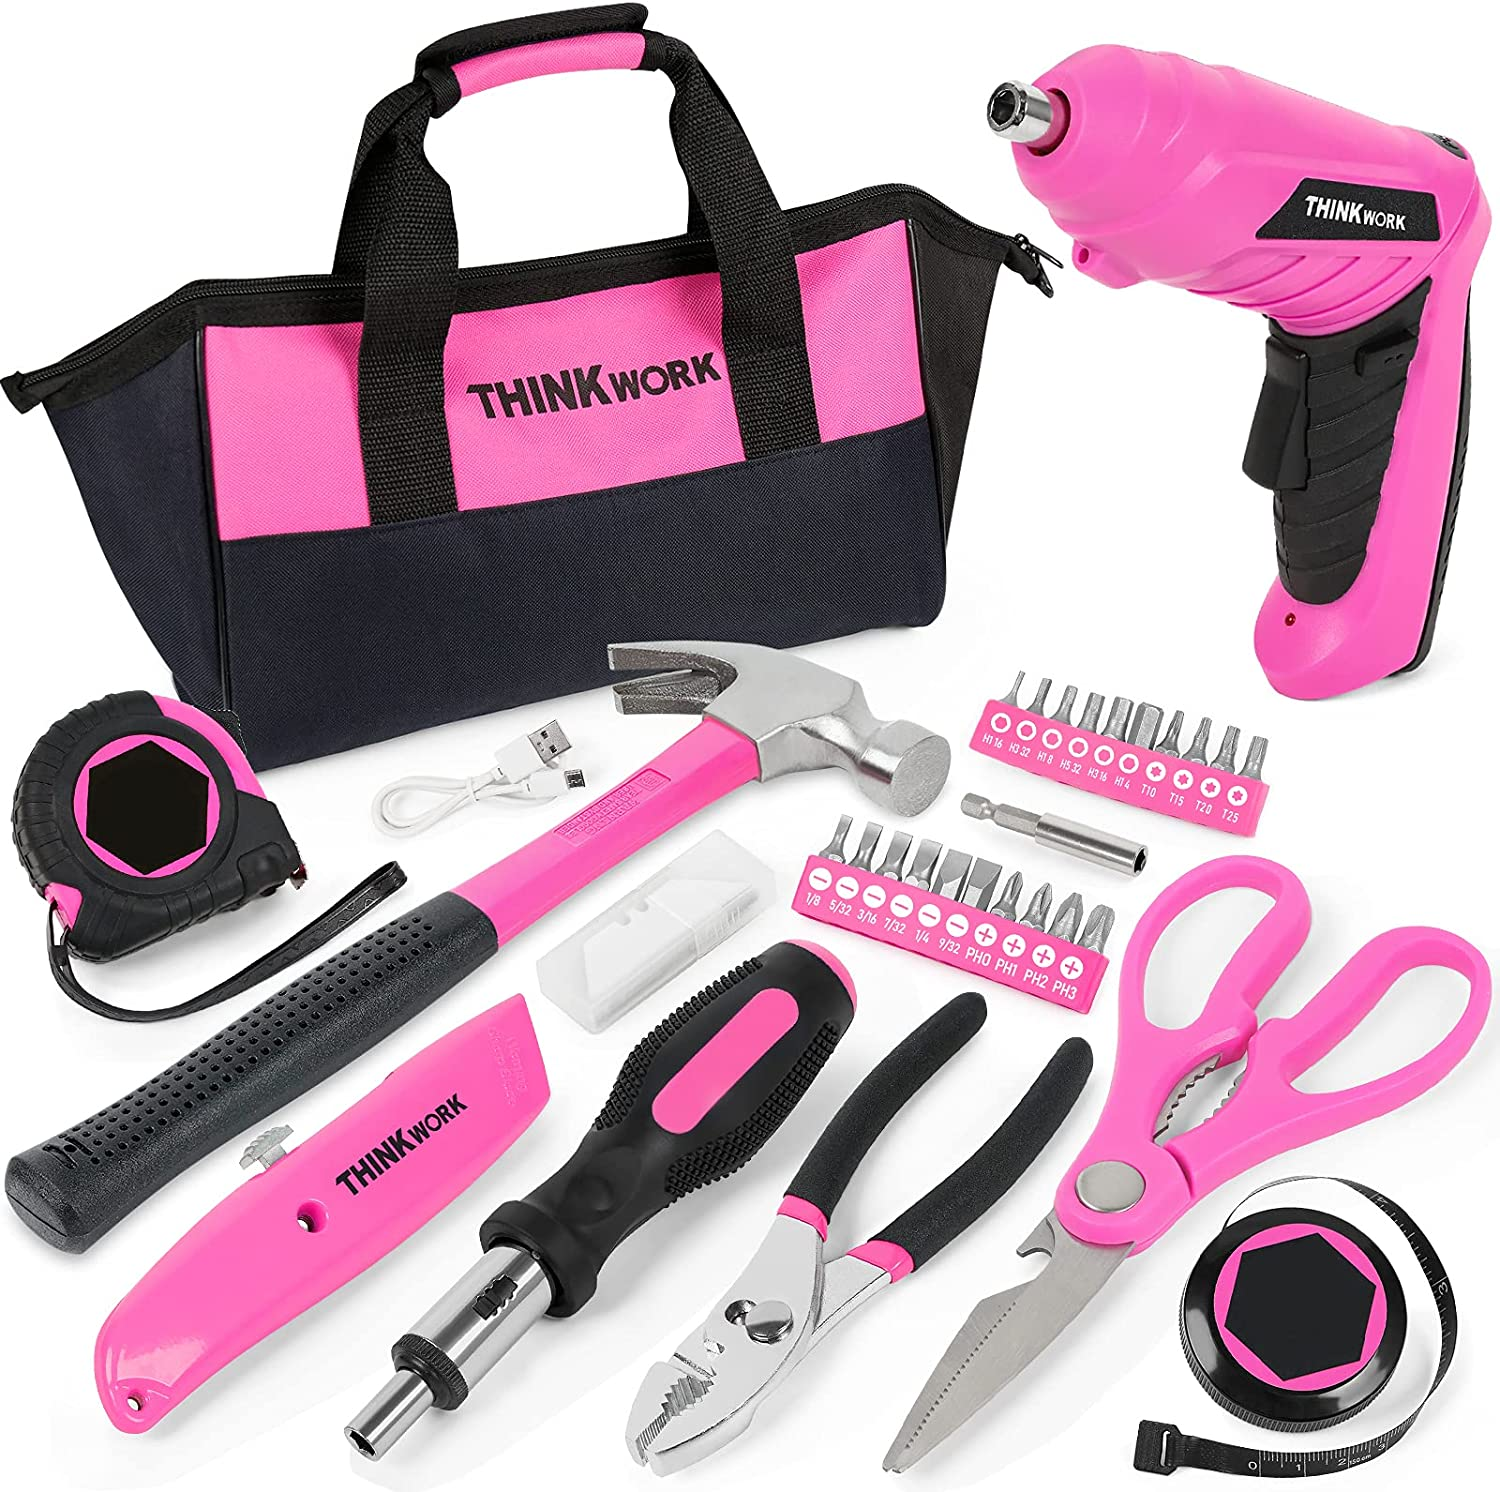 THINKWORK 40-Piece Pink Tool Set - Ladies Hand Tool Set with 3.6V Rotatable Electric Screwdriver - Long-lasting and Durable-Very Suitable for Gifts, Perfect for DIY, Daily Home Decoration